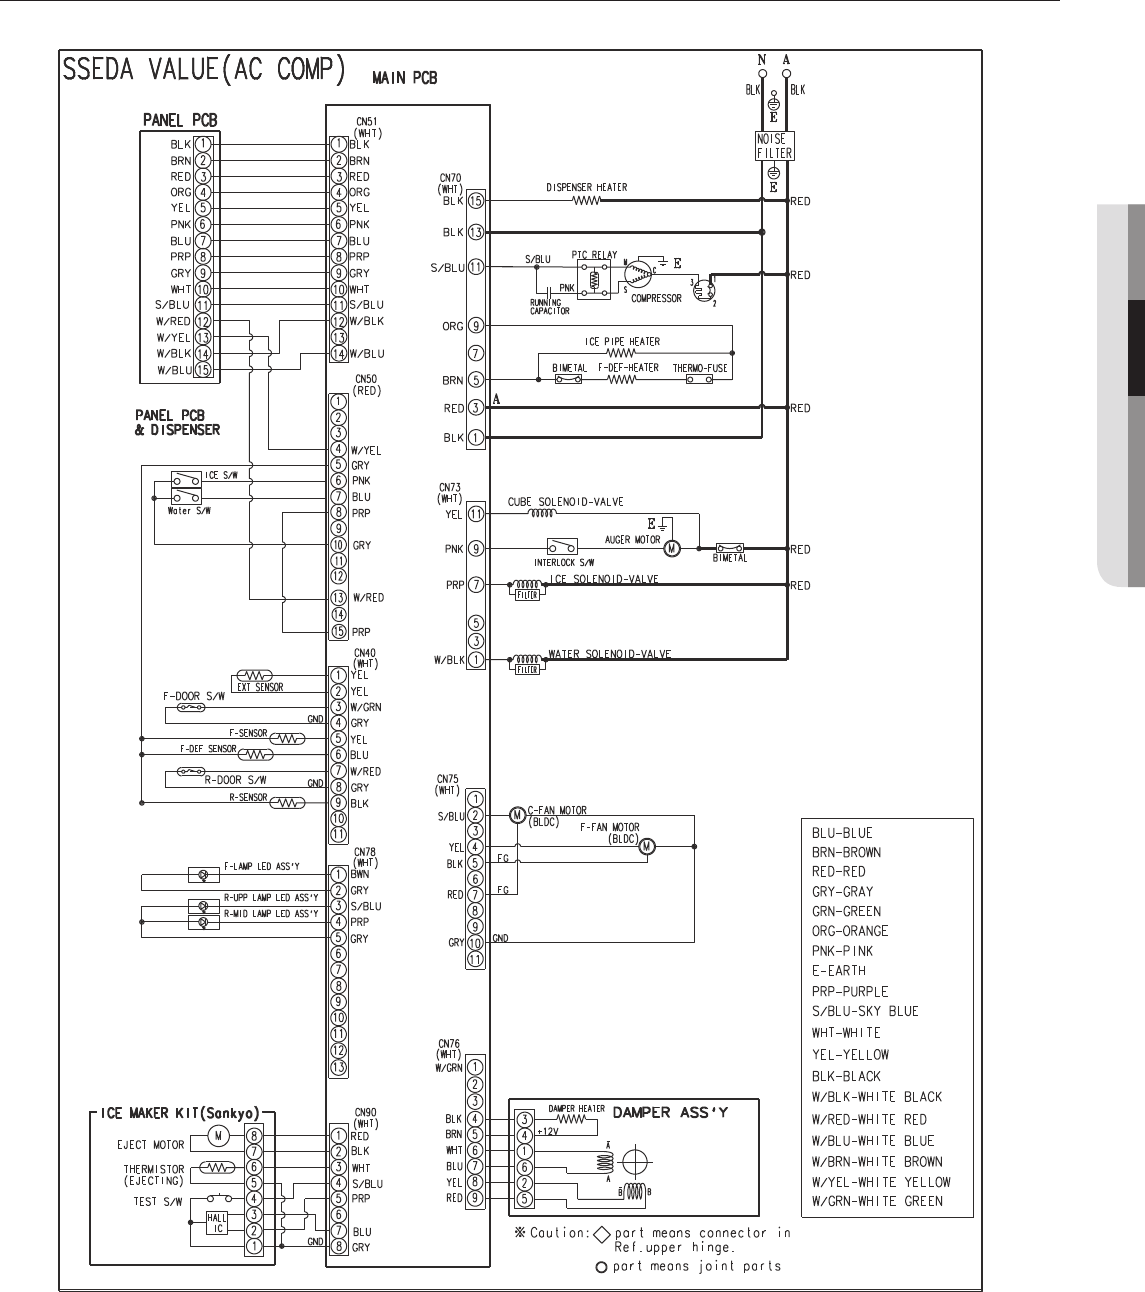 21aa6212 5c03 4539 ac02 99a0885d5c5e bg1f page 31 of samsung refrigerator rs261mdwp user guide samsung refrigerator wiring diagram at gsmx.co